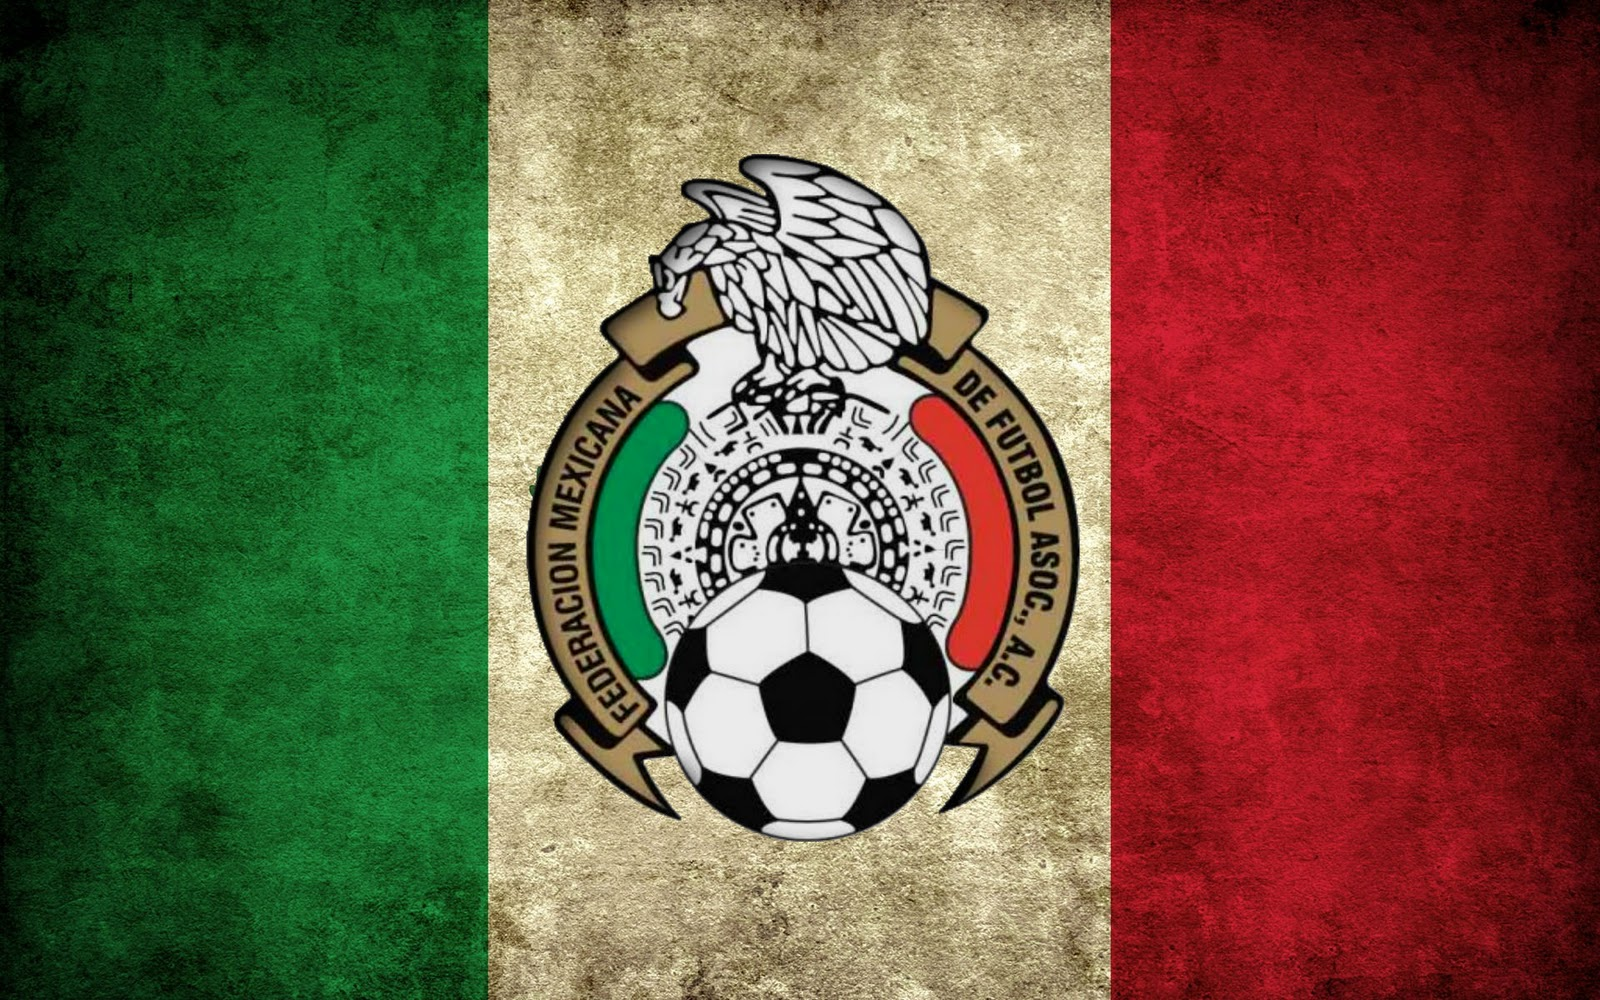 Mexico Soccer Logo Wallpaper Wallpapersafari